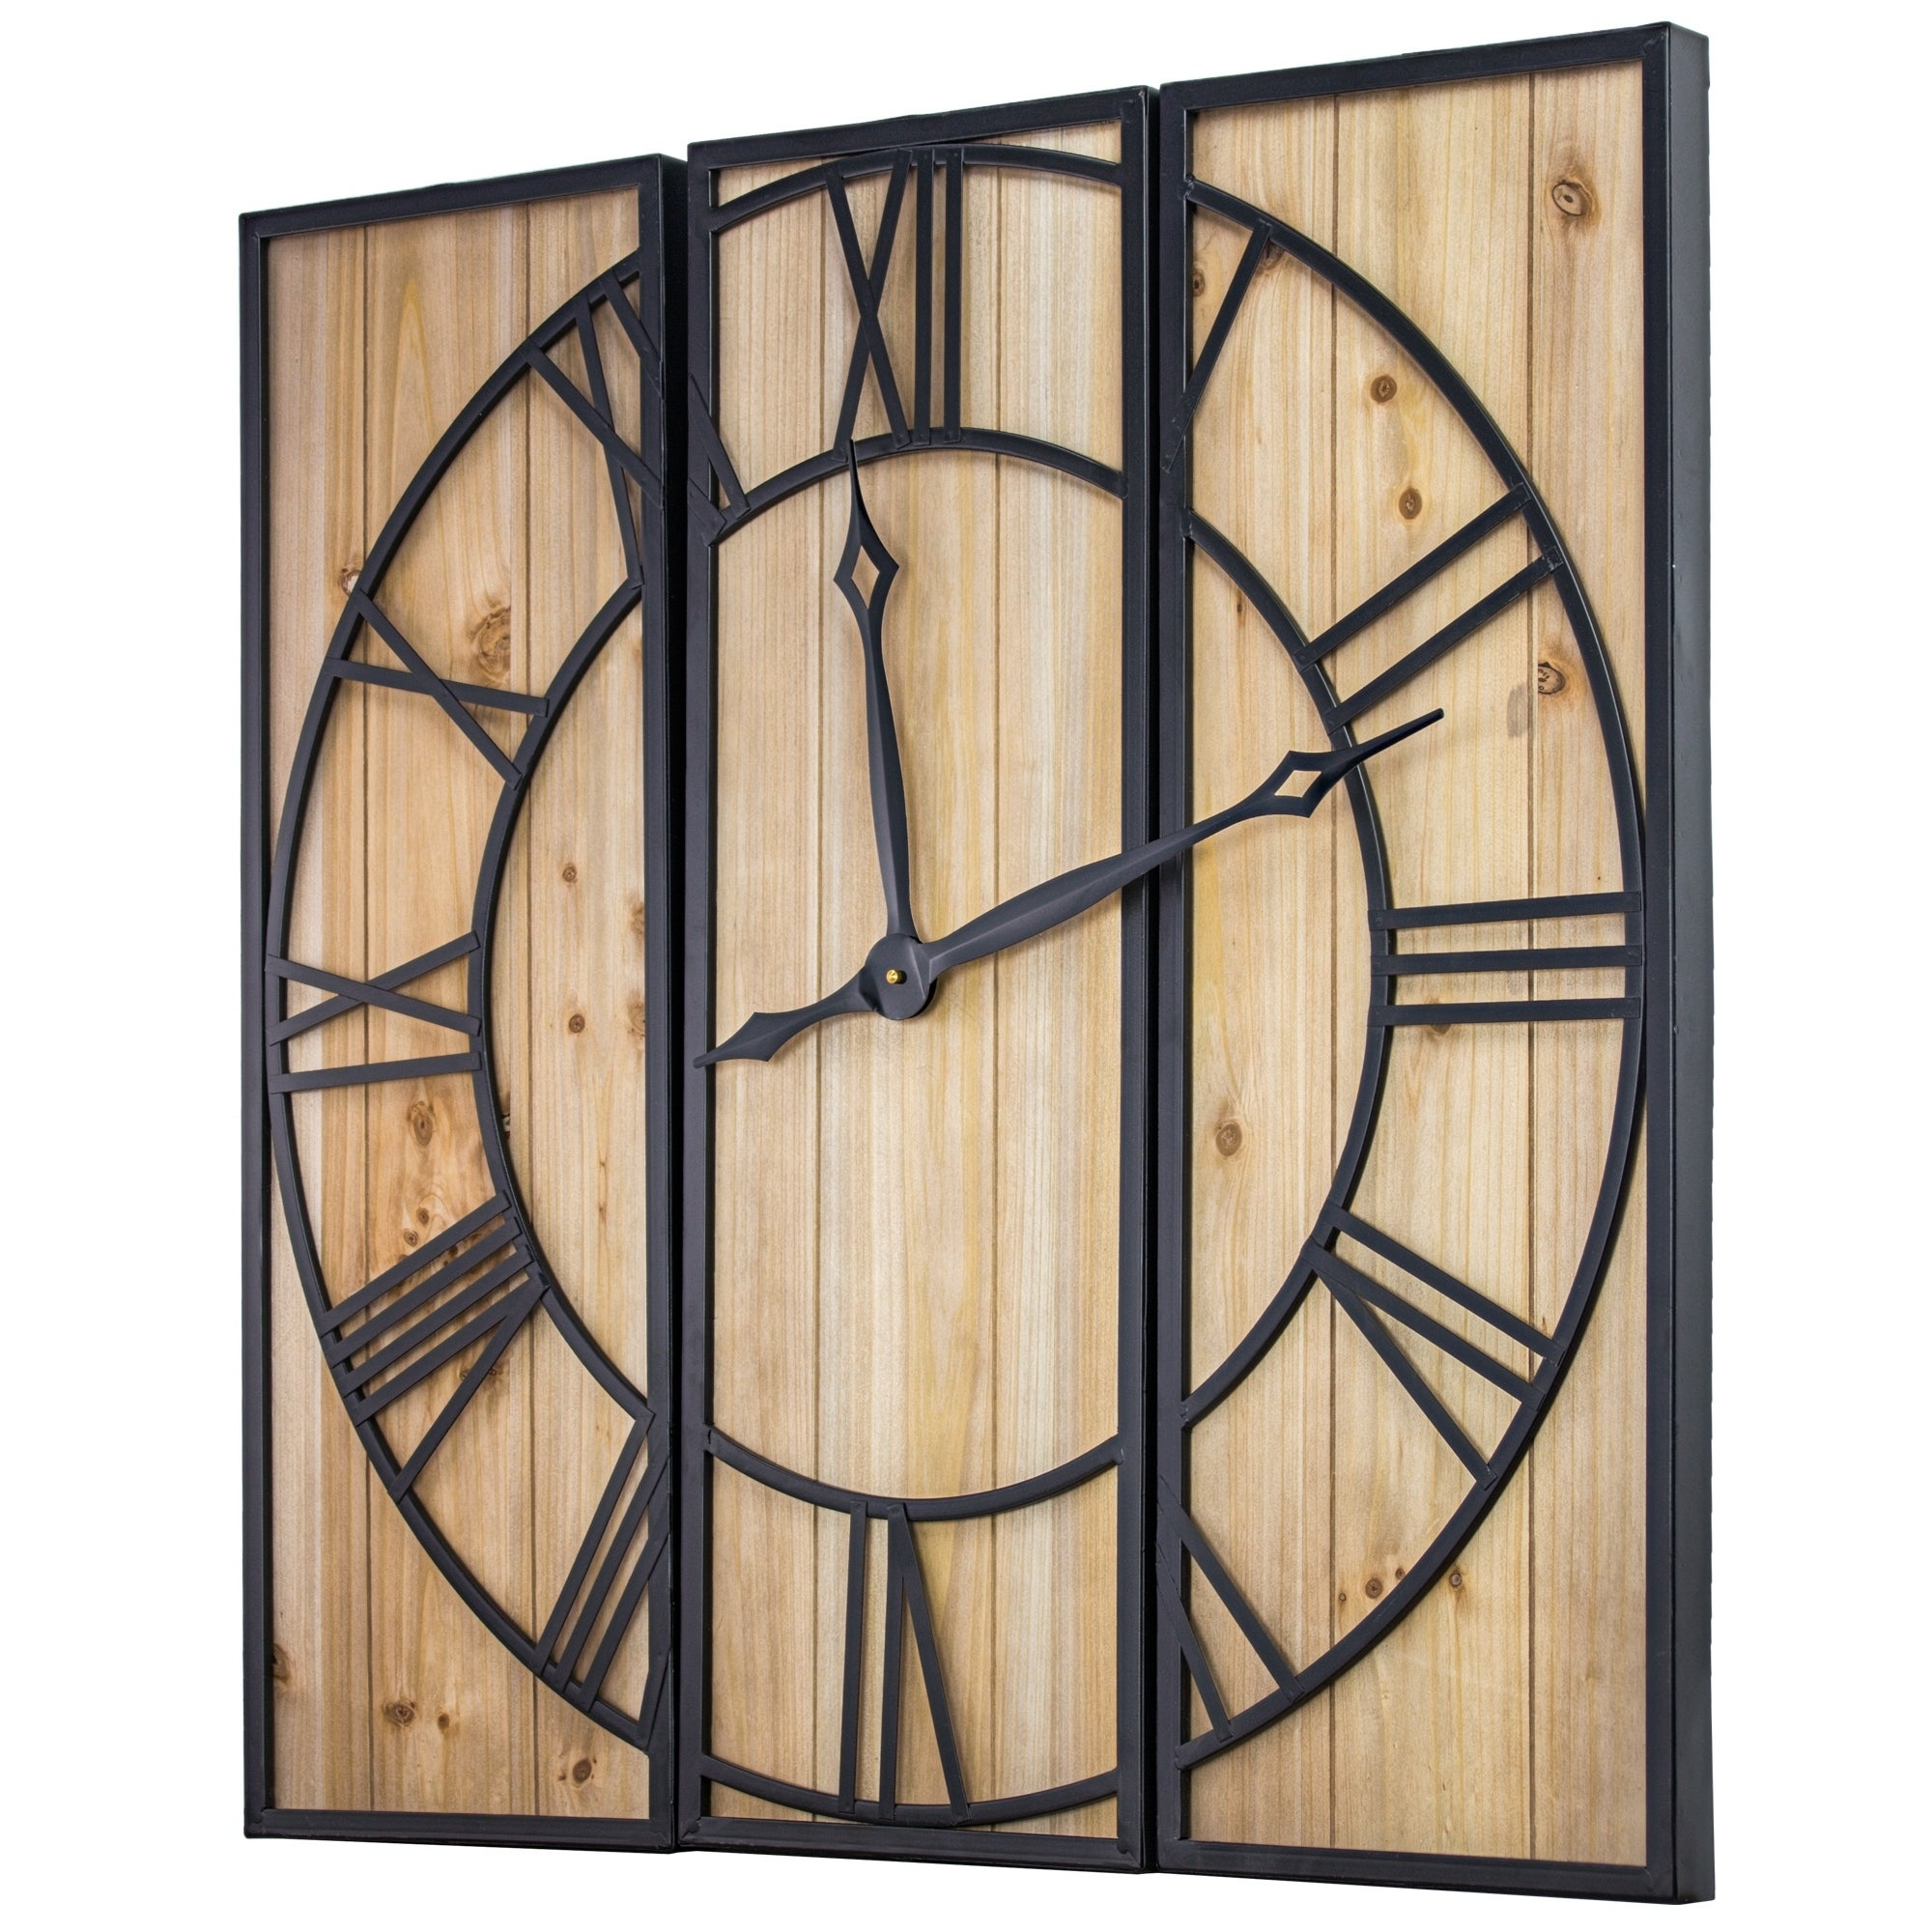 Oversized Wood And Metal 3 Piece Wall Clock 30 X 30 On Sale Overstock 29141451